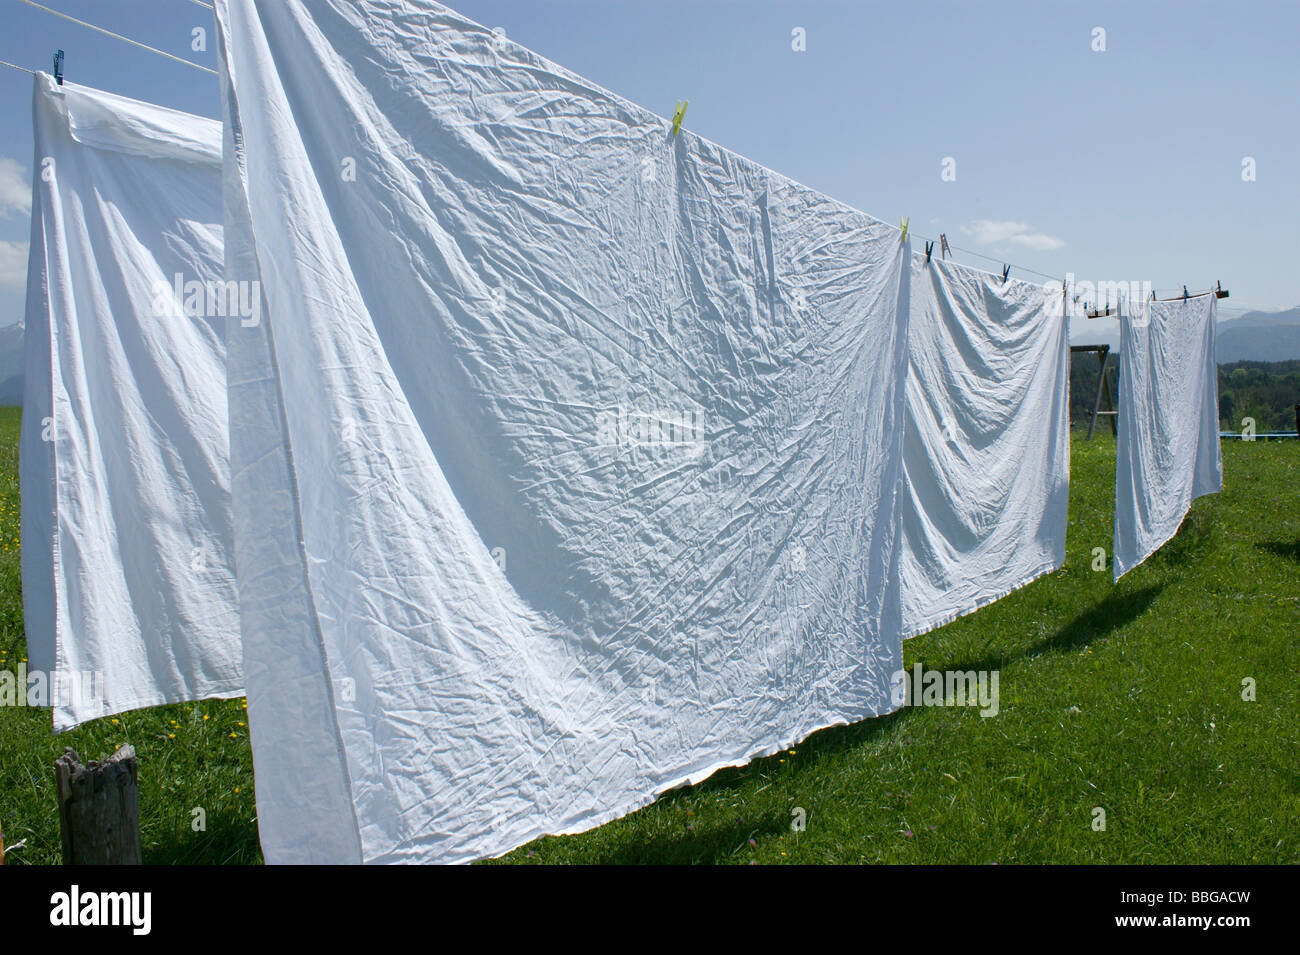 clothesline with bed sheet - Stock Image